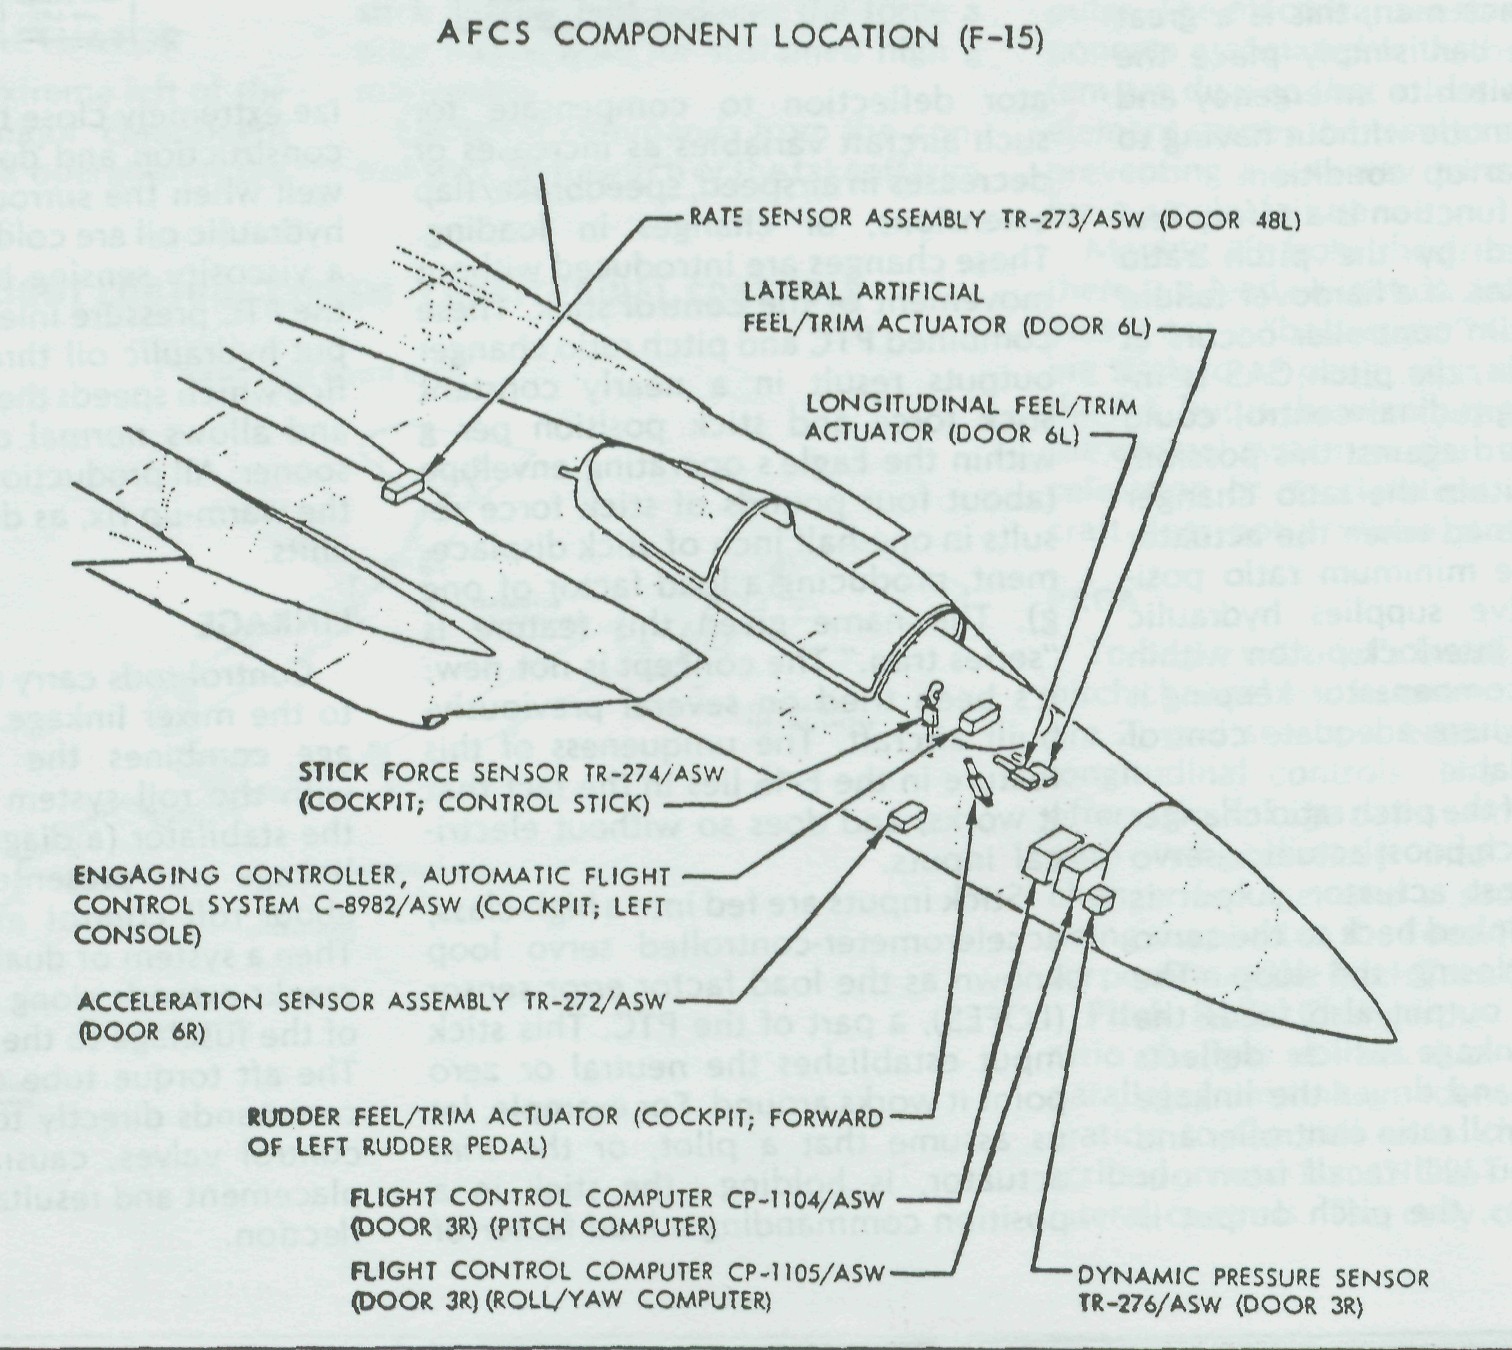 #3: AFCS Component Location (F-15)